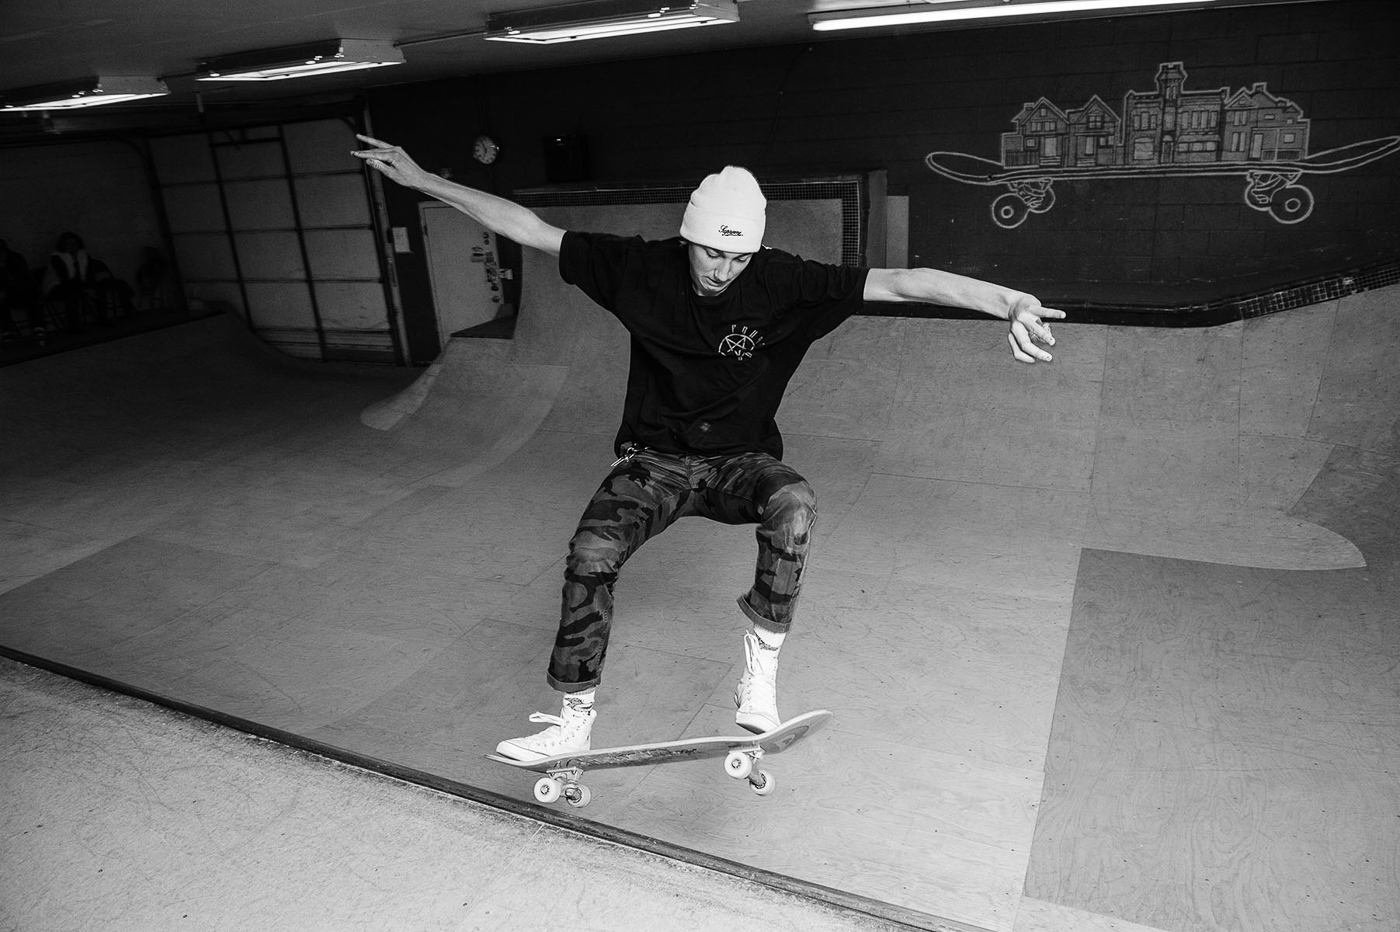 PHOCO Best of 2018 Photograph Fort Collins-1 Launchskate Black White Skateboard.jpg